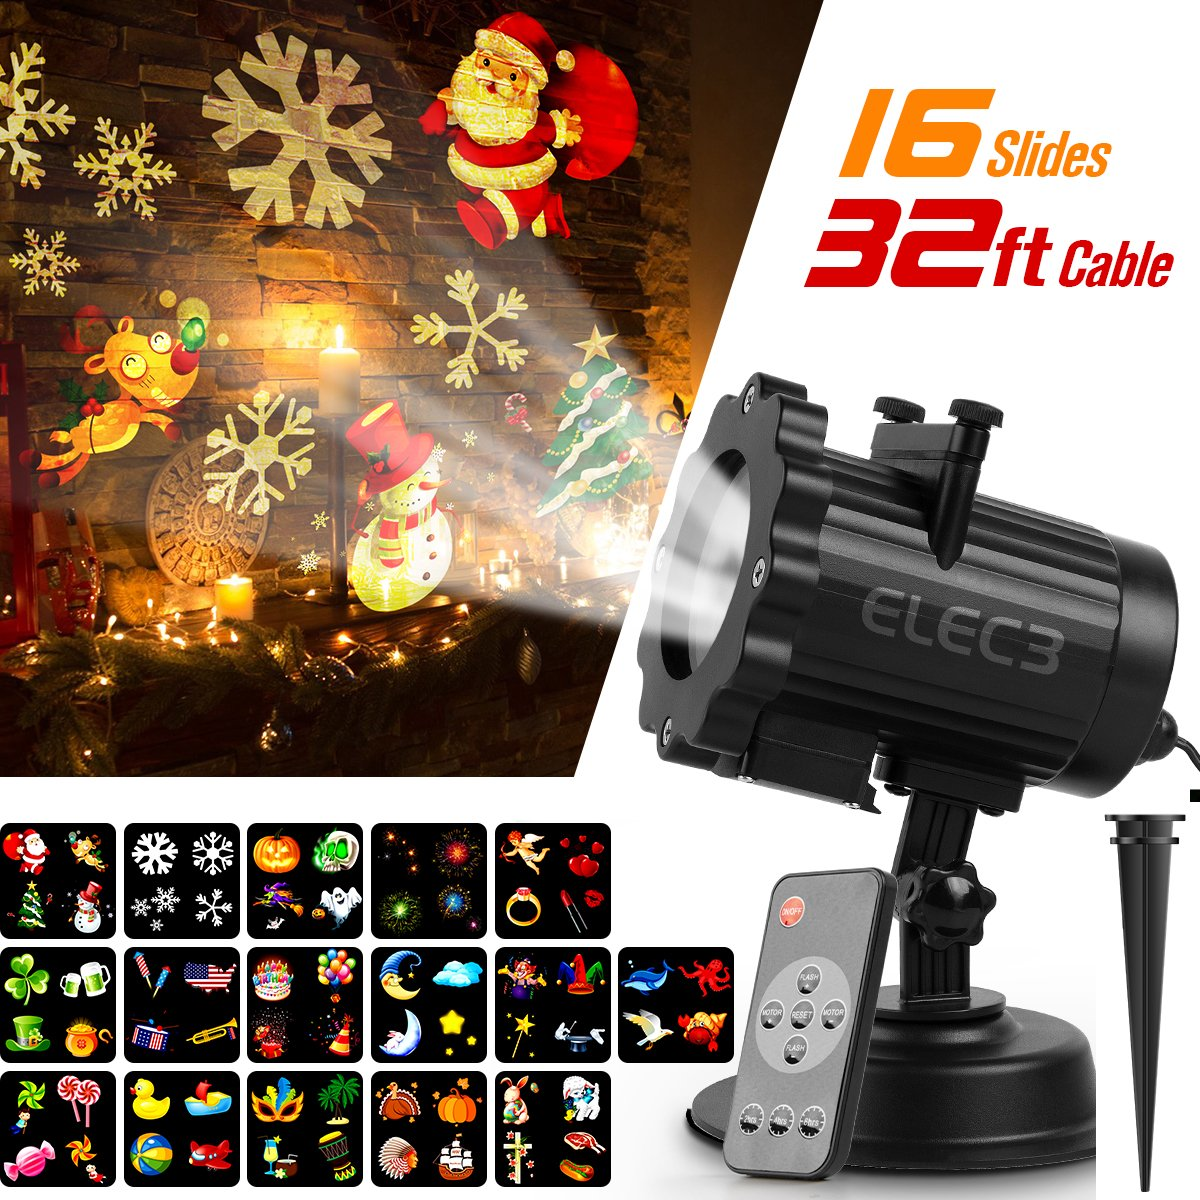 Elec3 Christmas Halloween Projector Light, 16 Slides Landscape Motion Projector Lights with Remote Control, 32ft Power Cable for Decoration Lighting on Halloween Holiday Party